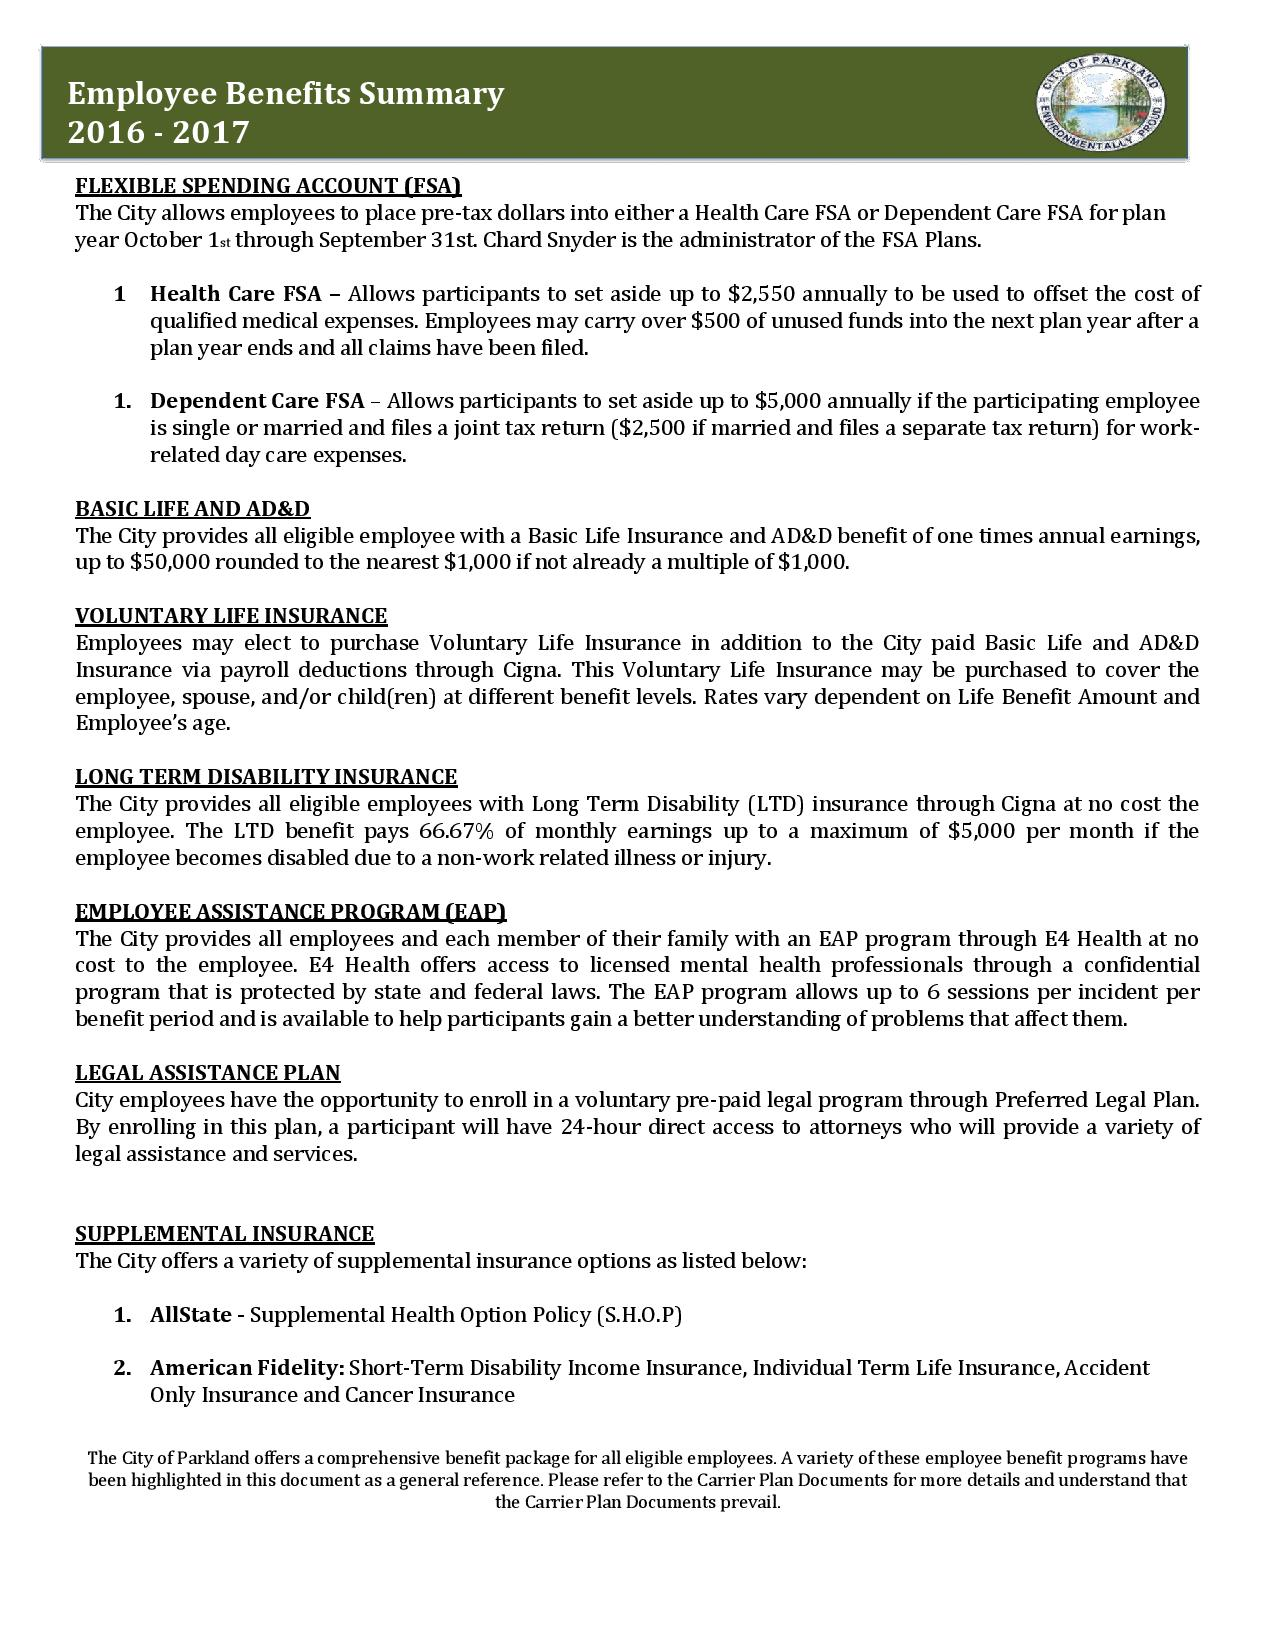 2017 Employee Benefits Summary Handout Revised Aug  2017-page-002